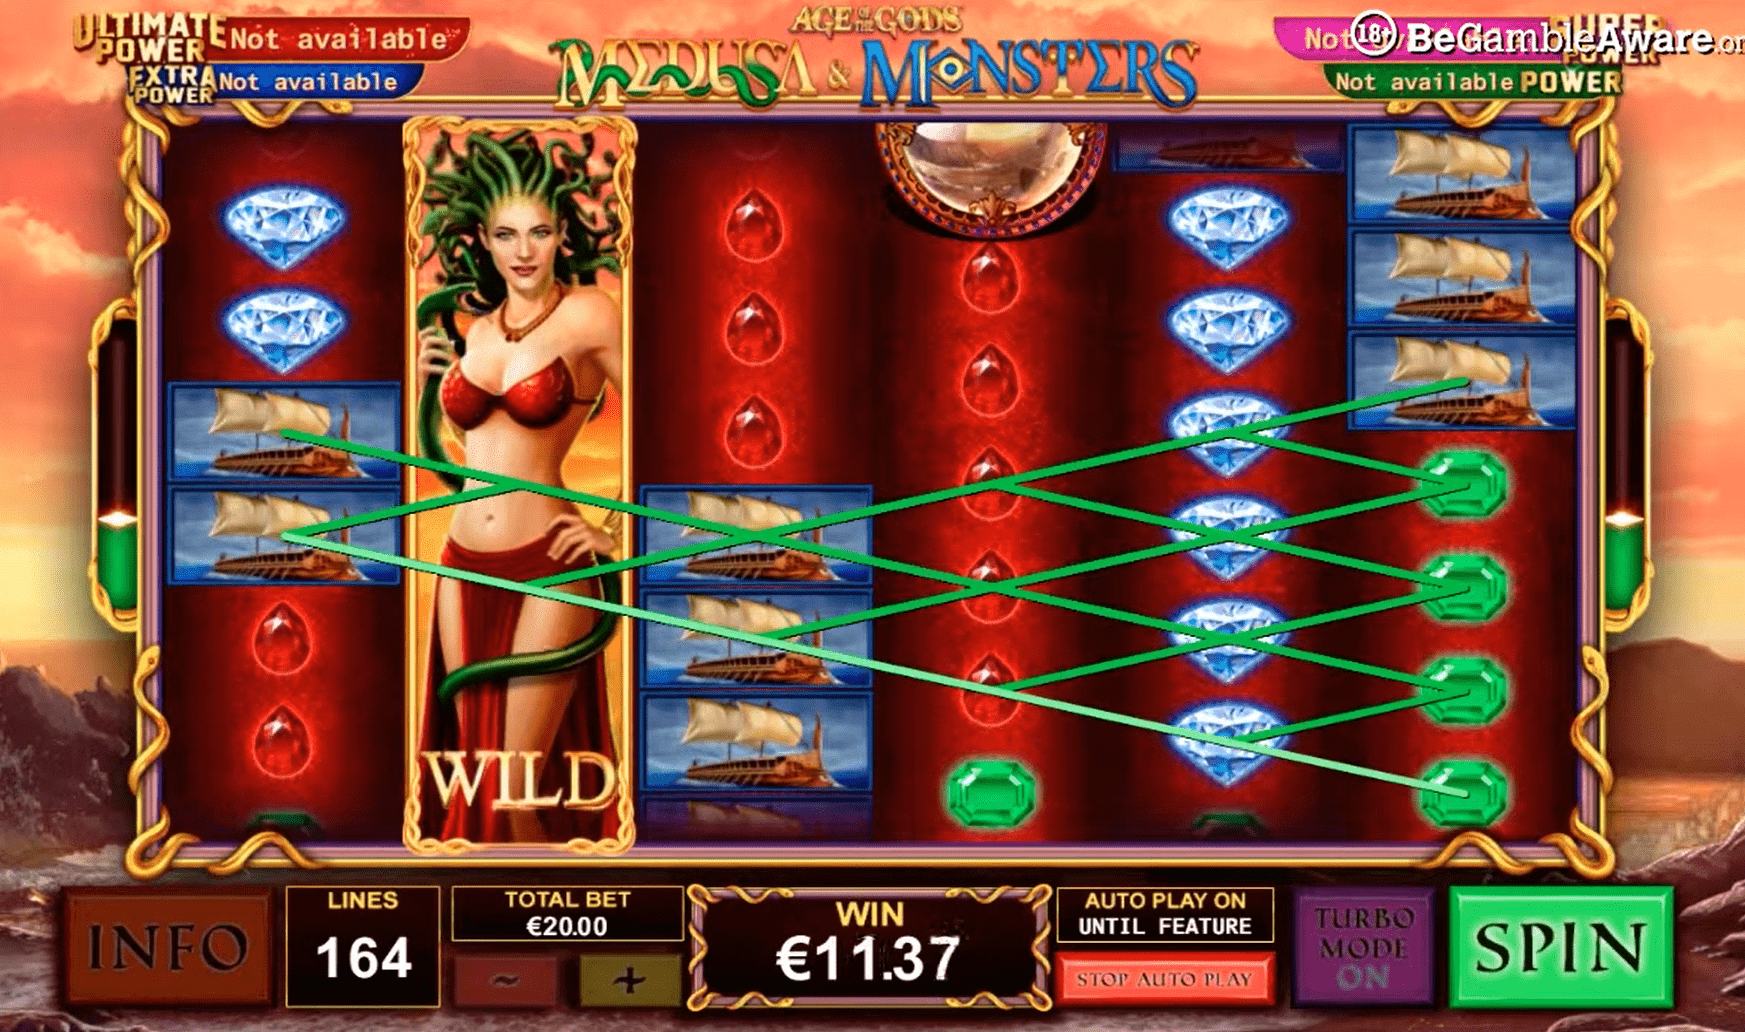 Age of the Gods Medusa and Monsters Slot Machine Winning